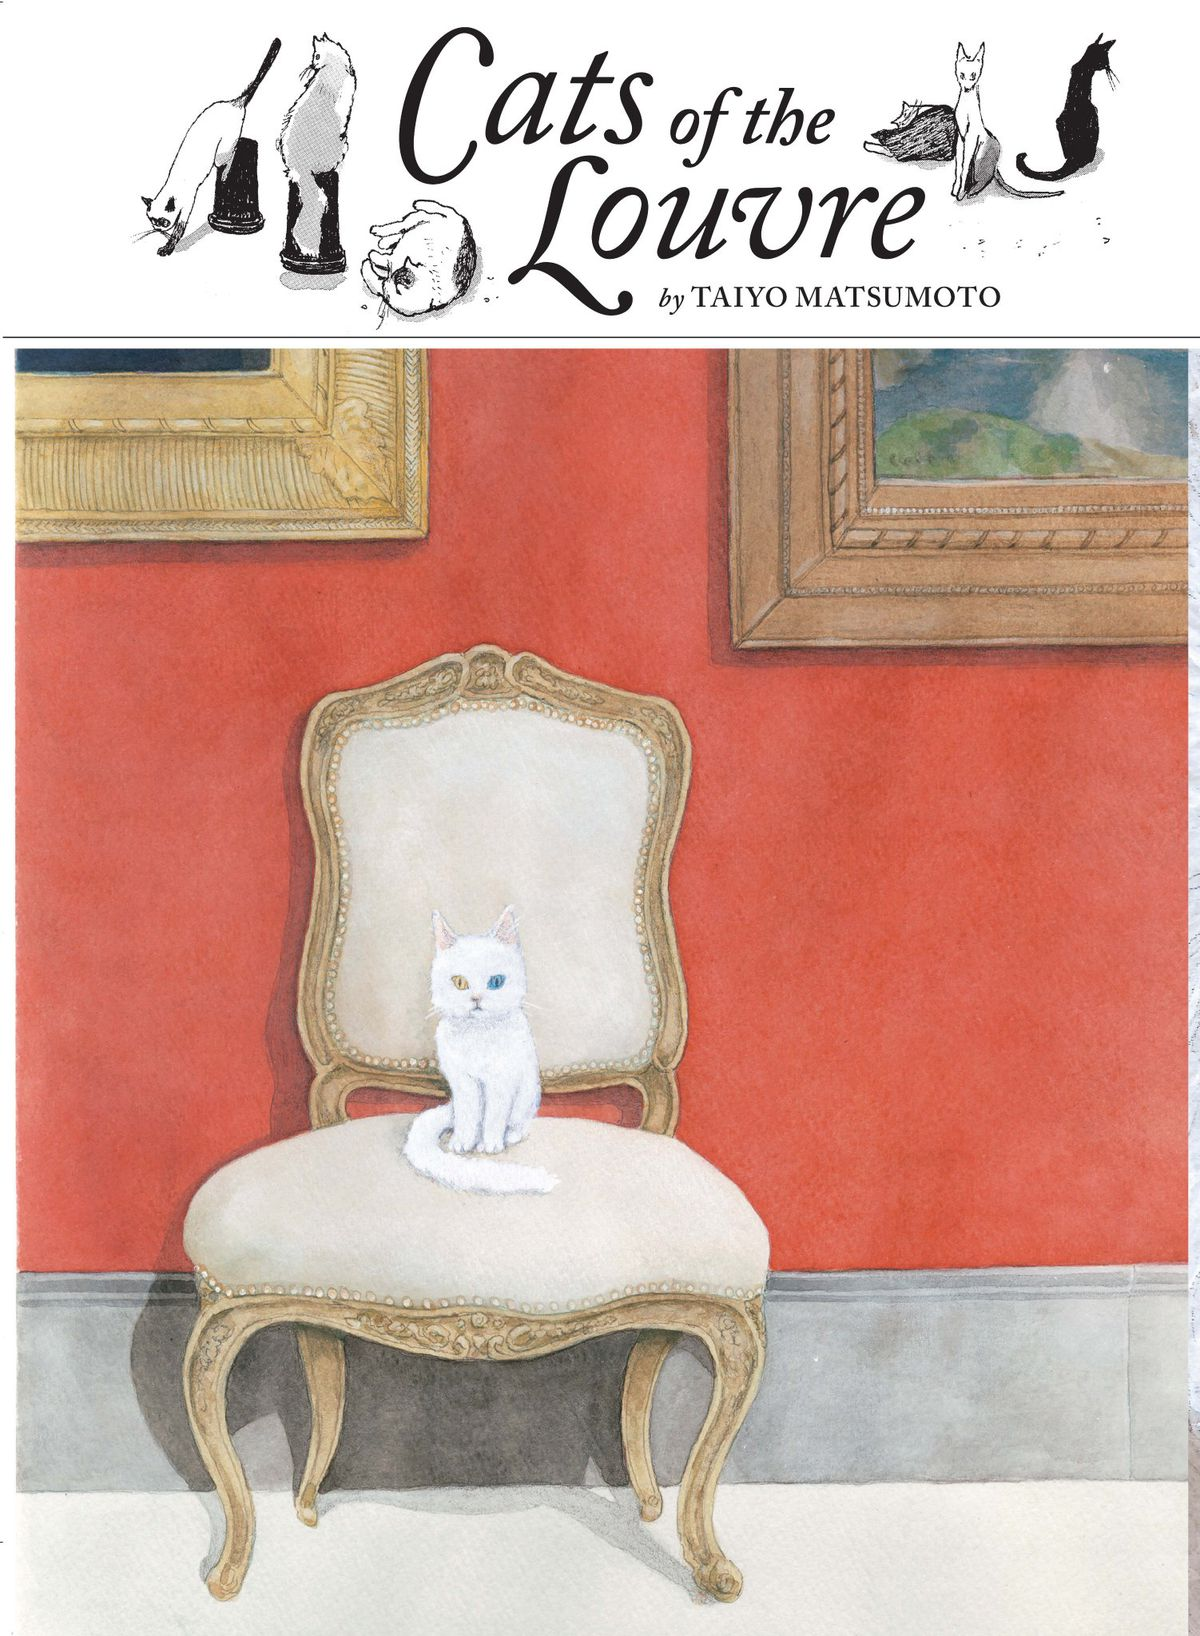 A white cat with one blue eye and one yellow sits on an ornate chair in an art gallery, on the cover of Cats of the Louvre, Viz Media (2019).